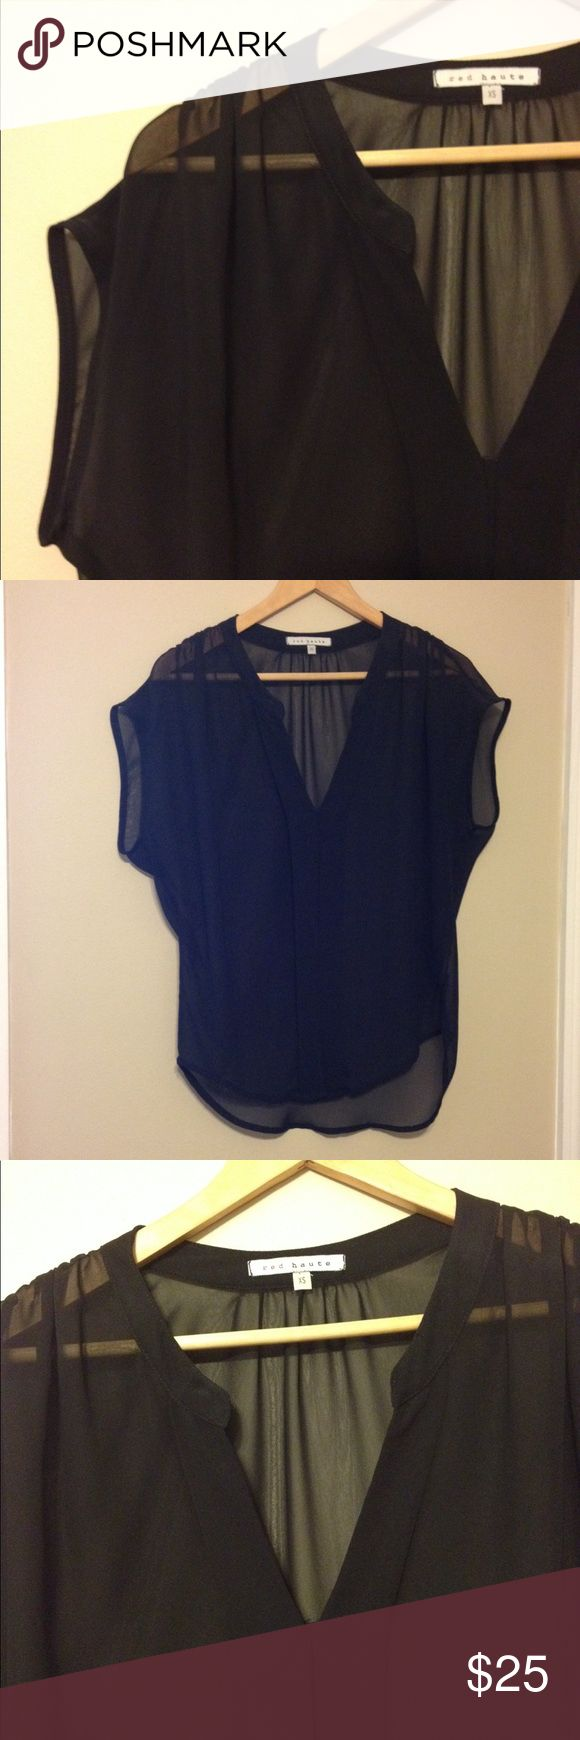 Black chiffon blouse by Red Haute With delicate ruching at the shoulder and concealed button on the front. By Red Haute from Nordstrom. Excellent condition with no flaws. Red Haute Tops Blouses